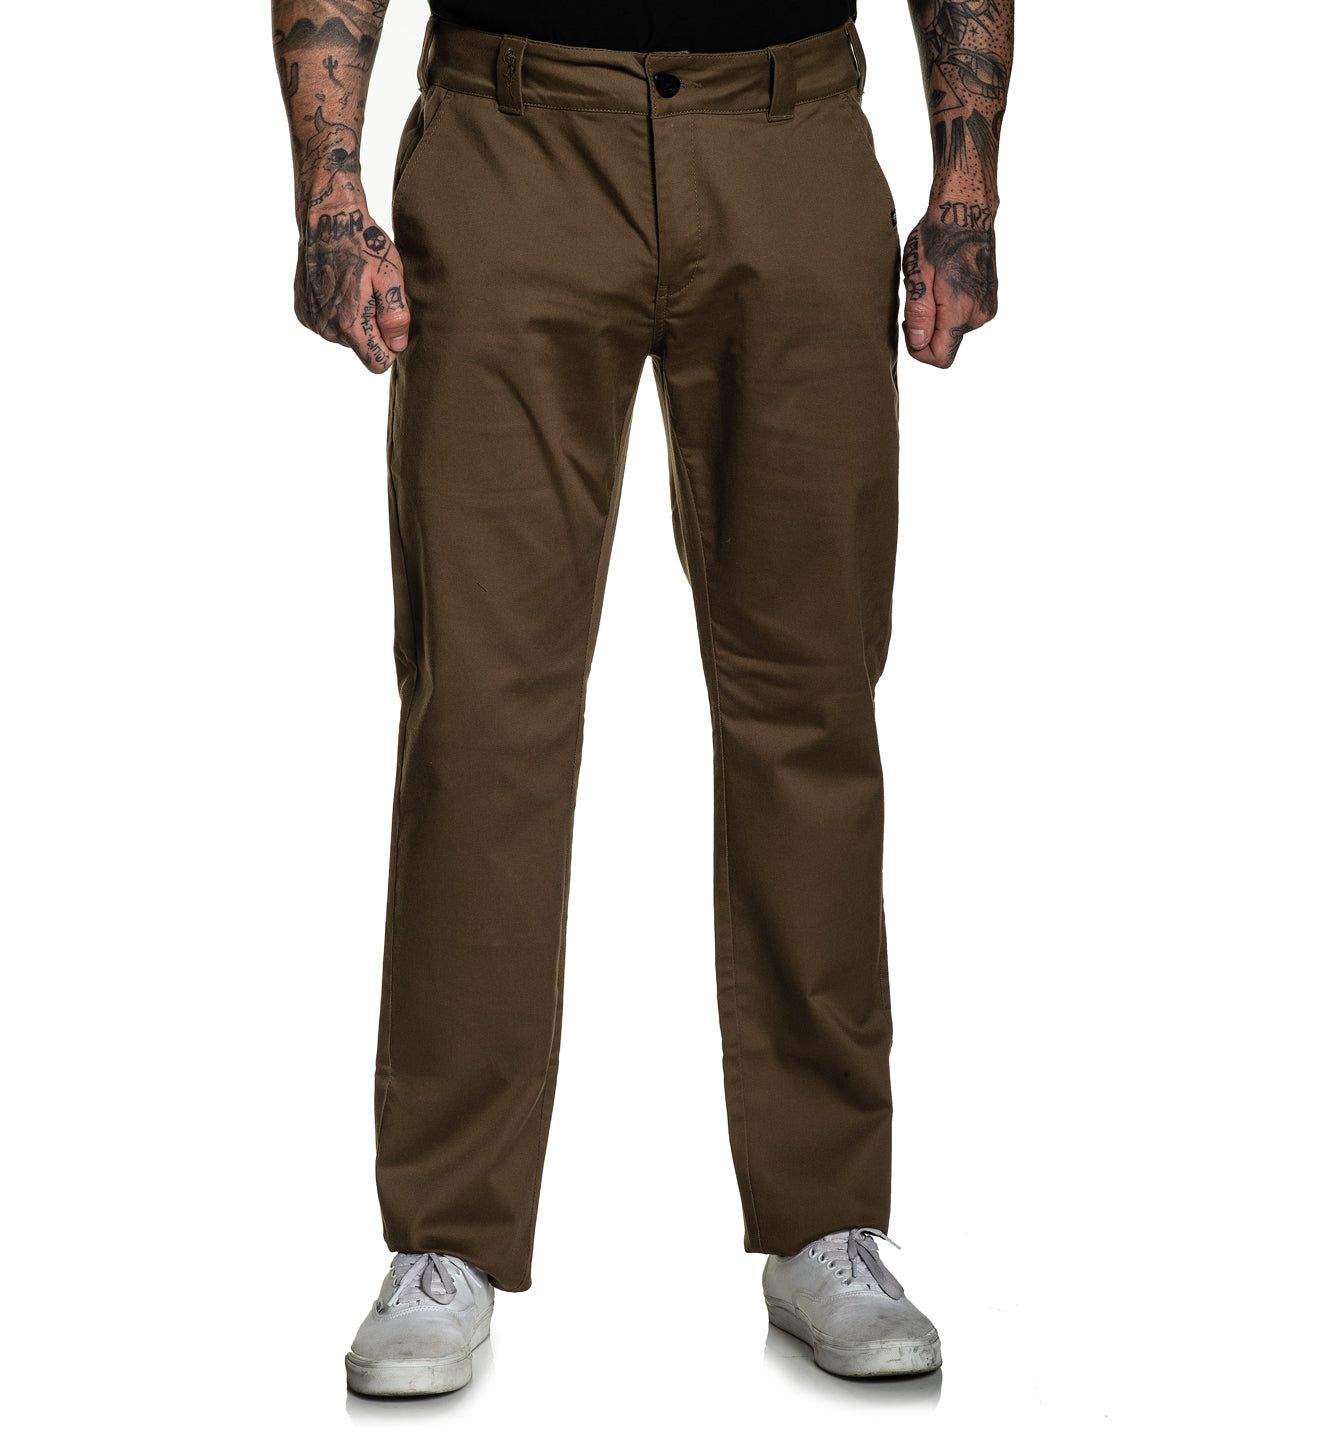 925 Relaxed fit Chino Stretch Pant Cub